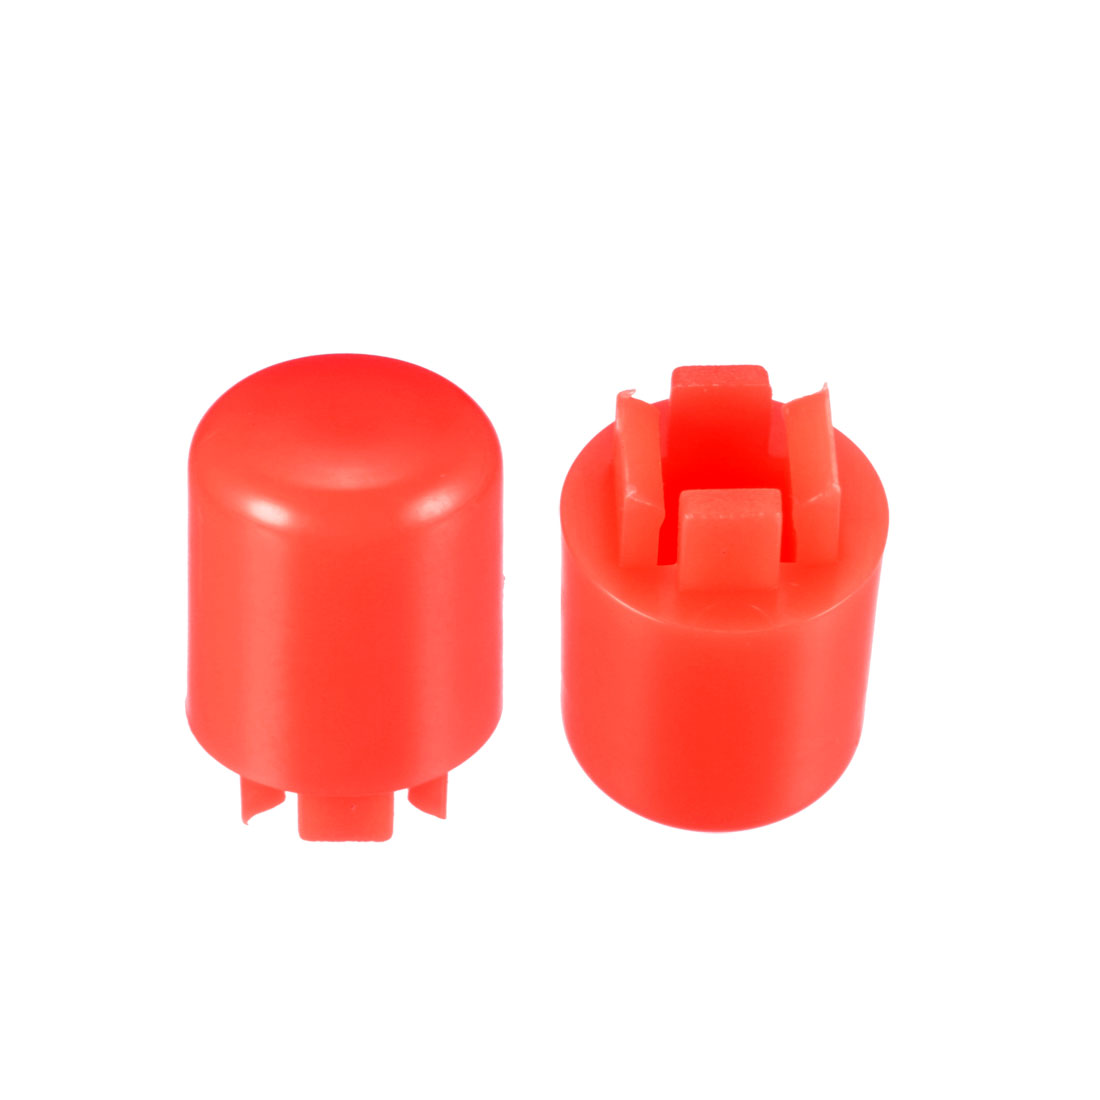 20Pcs Pushbutton Tactile Switch Caps Cover Red for 12x12x7.3mm Tact Switch